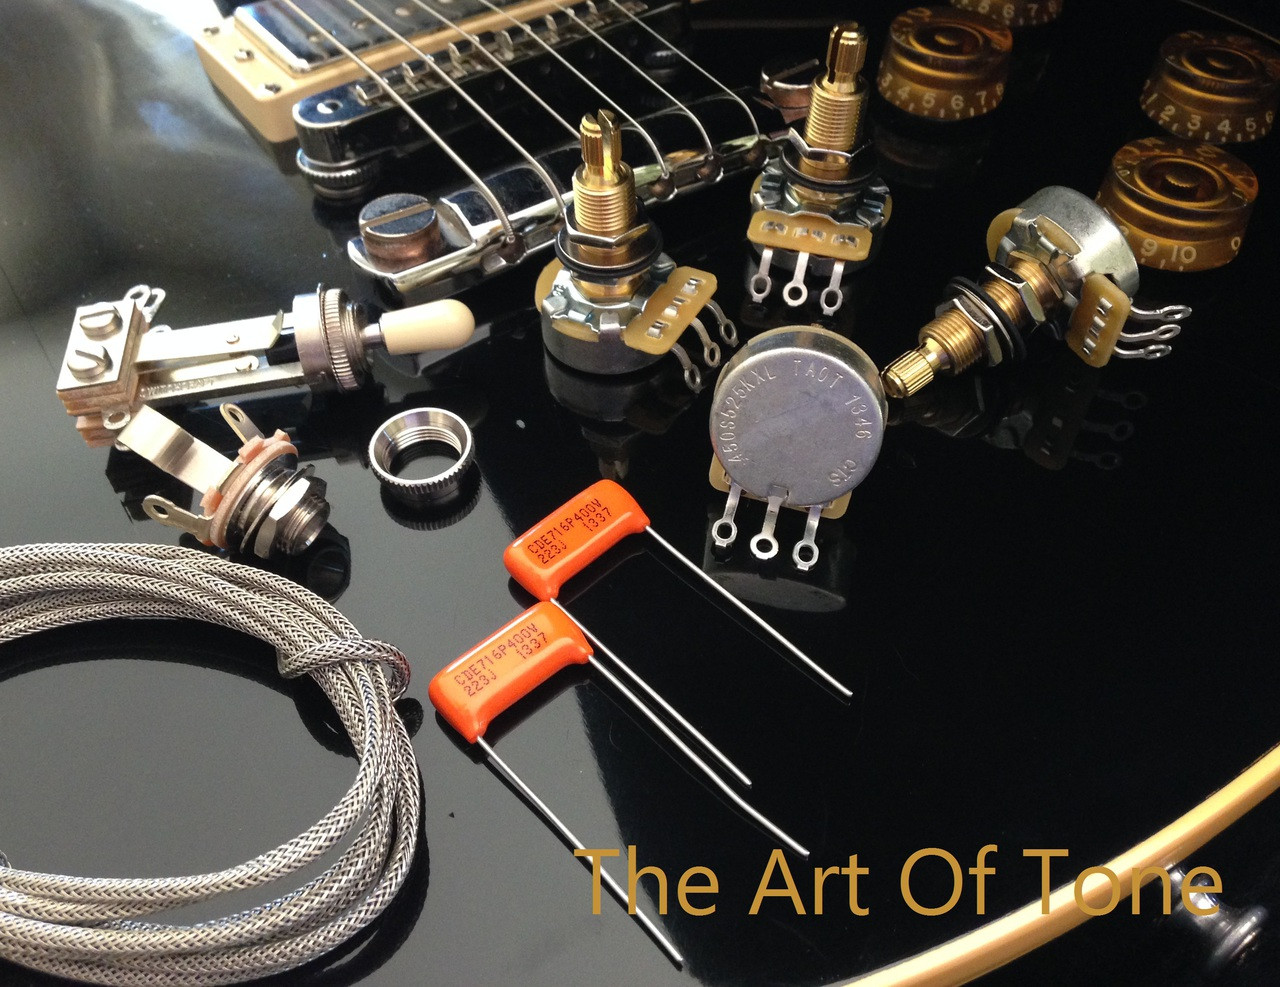 WK BDLXLP 525KXLOD_Logo__09144.1477508799.1280.1280?c=2 wiring kit gibson les paul long shaft cts taot 500kxl pots gibson wiring at creativeand.co